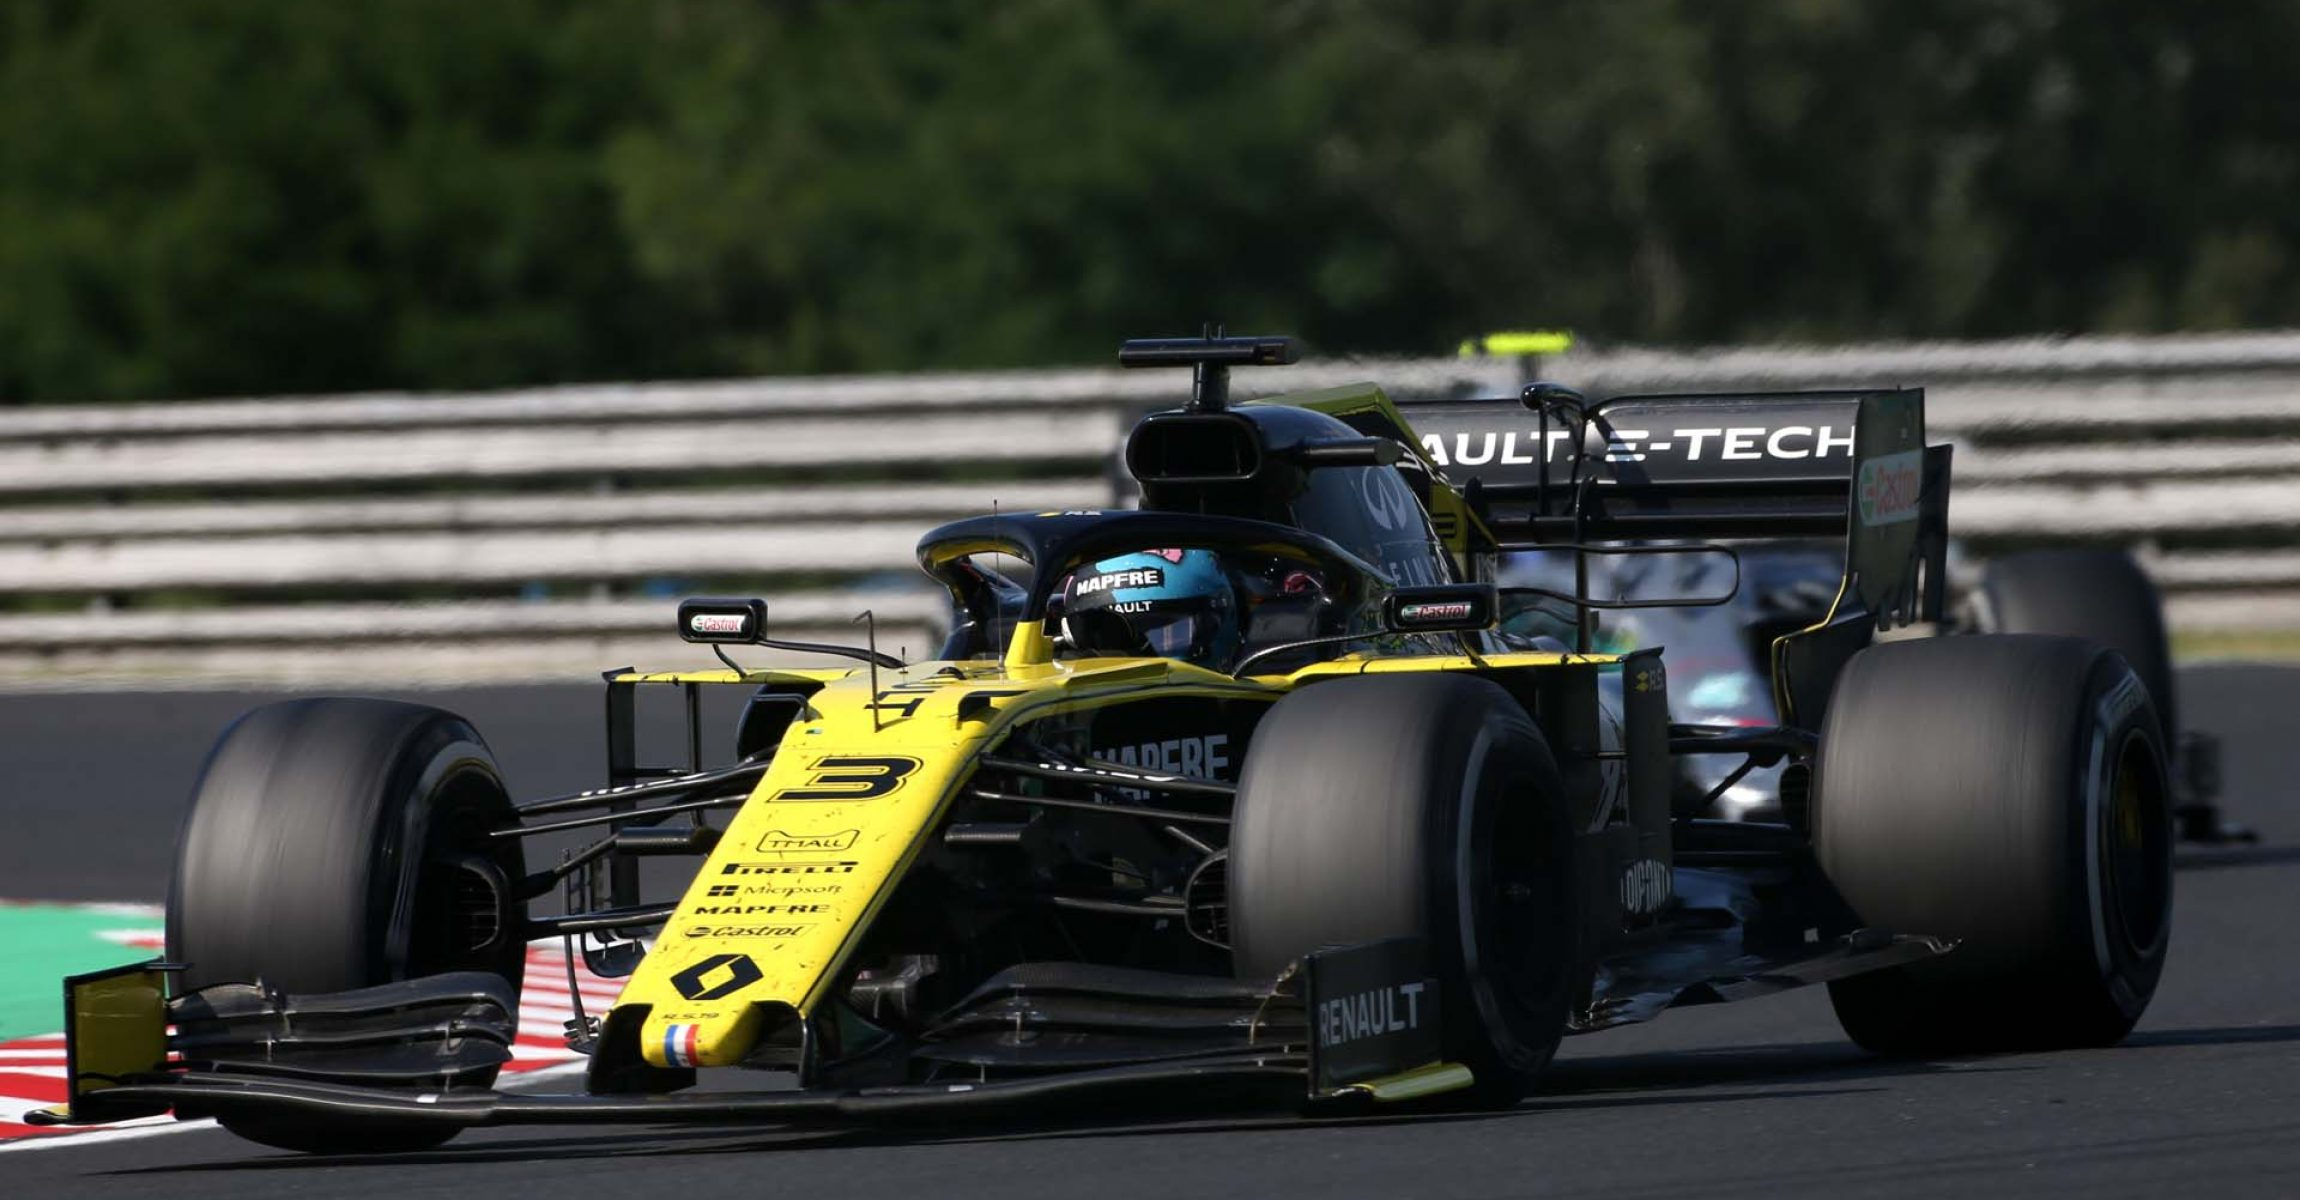 Daniel Ricciardo (AUS) Renault F1 Team RS19. Hungarian Grand Prix, Sunday 4th August 2019. Budapest, Hungary.